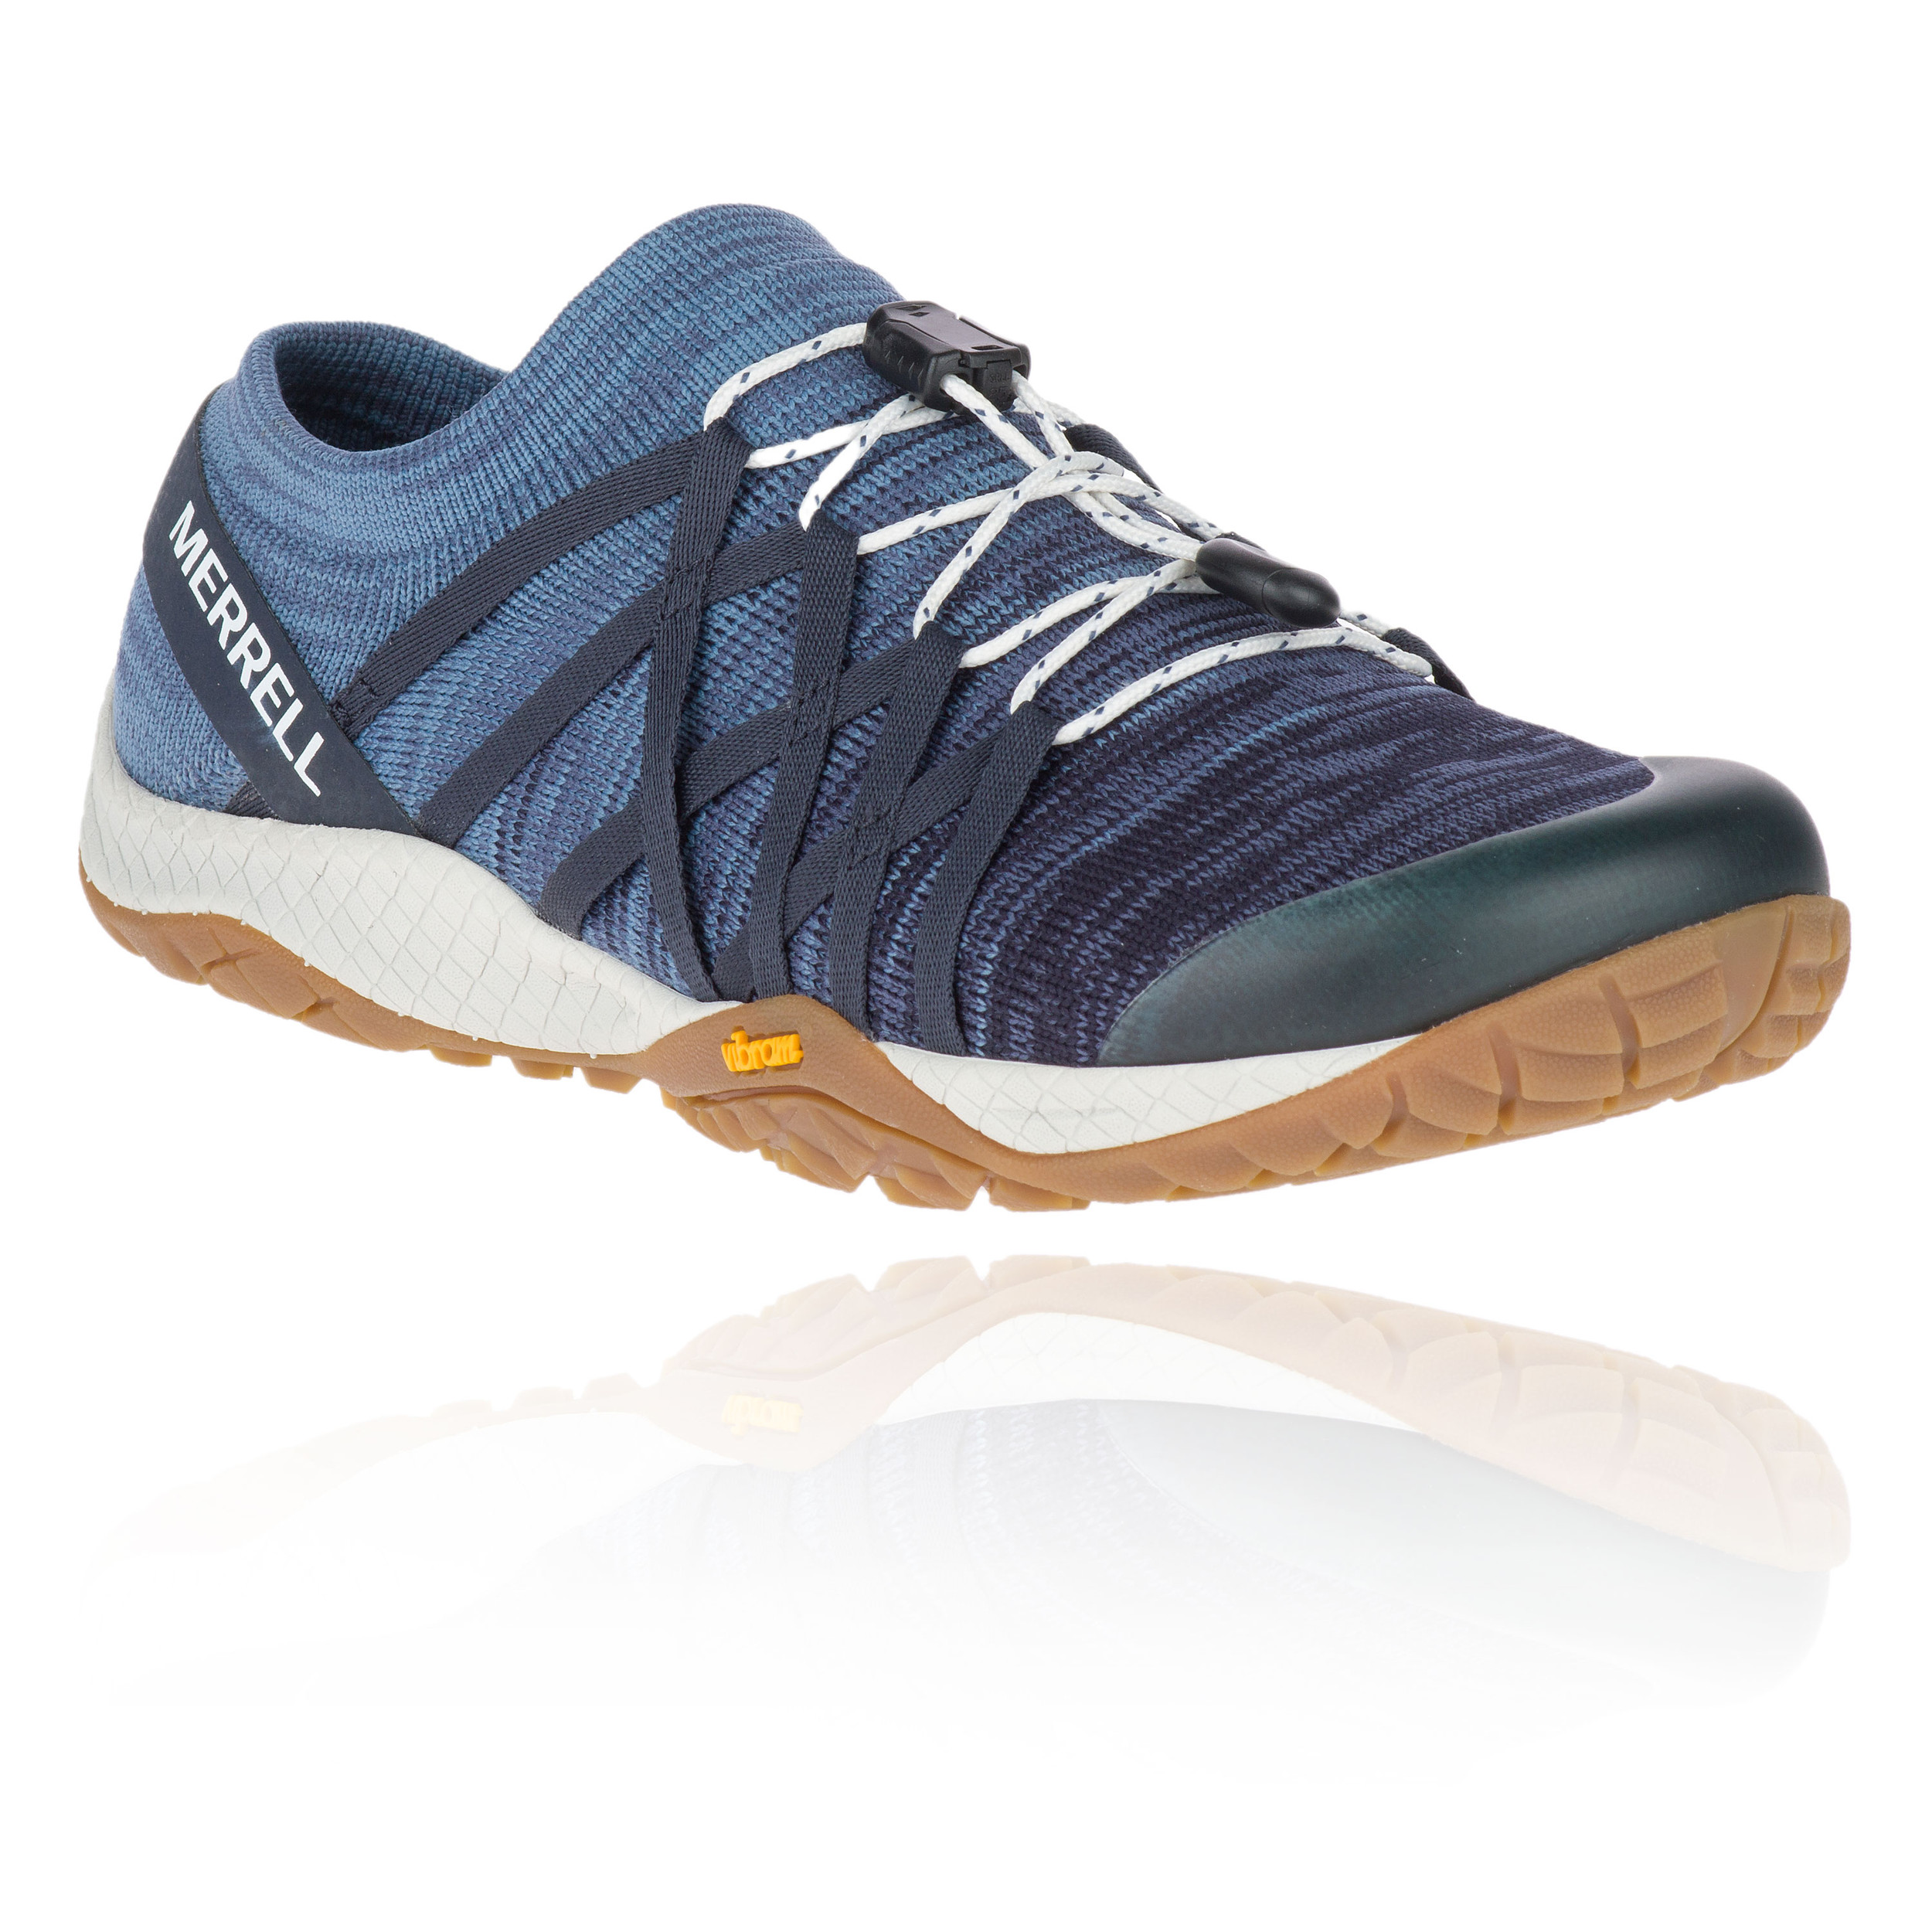 526a3e1e Details about Merrell Womens Trail Glove 4 Knit Running Shoes Trainers  Sneakers Blue Sports